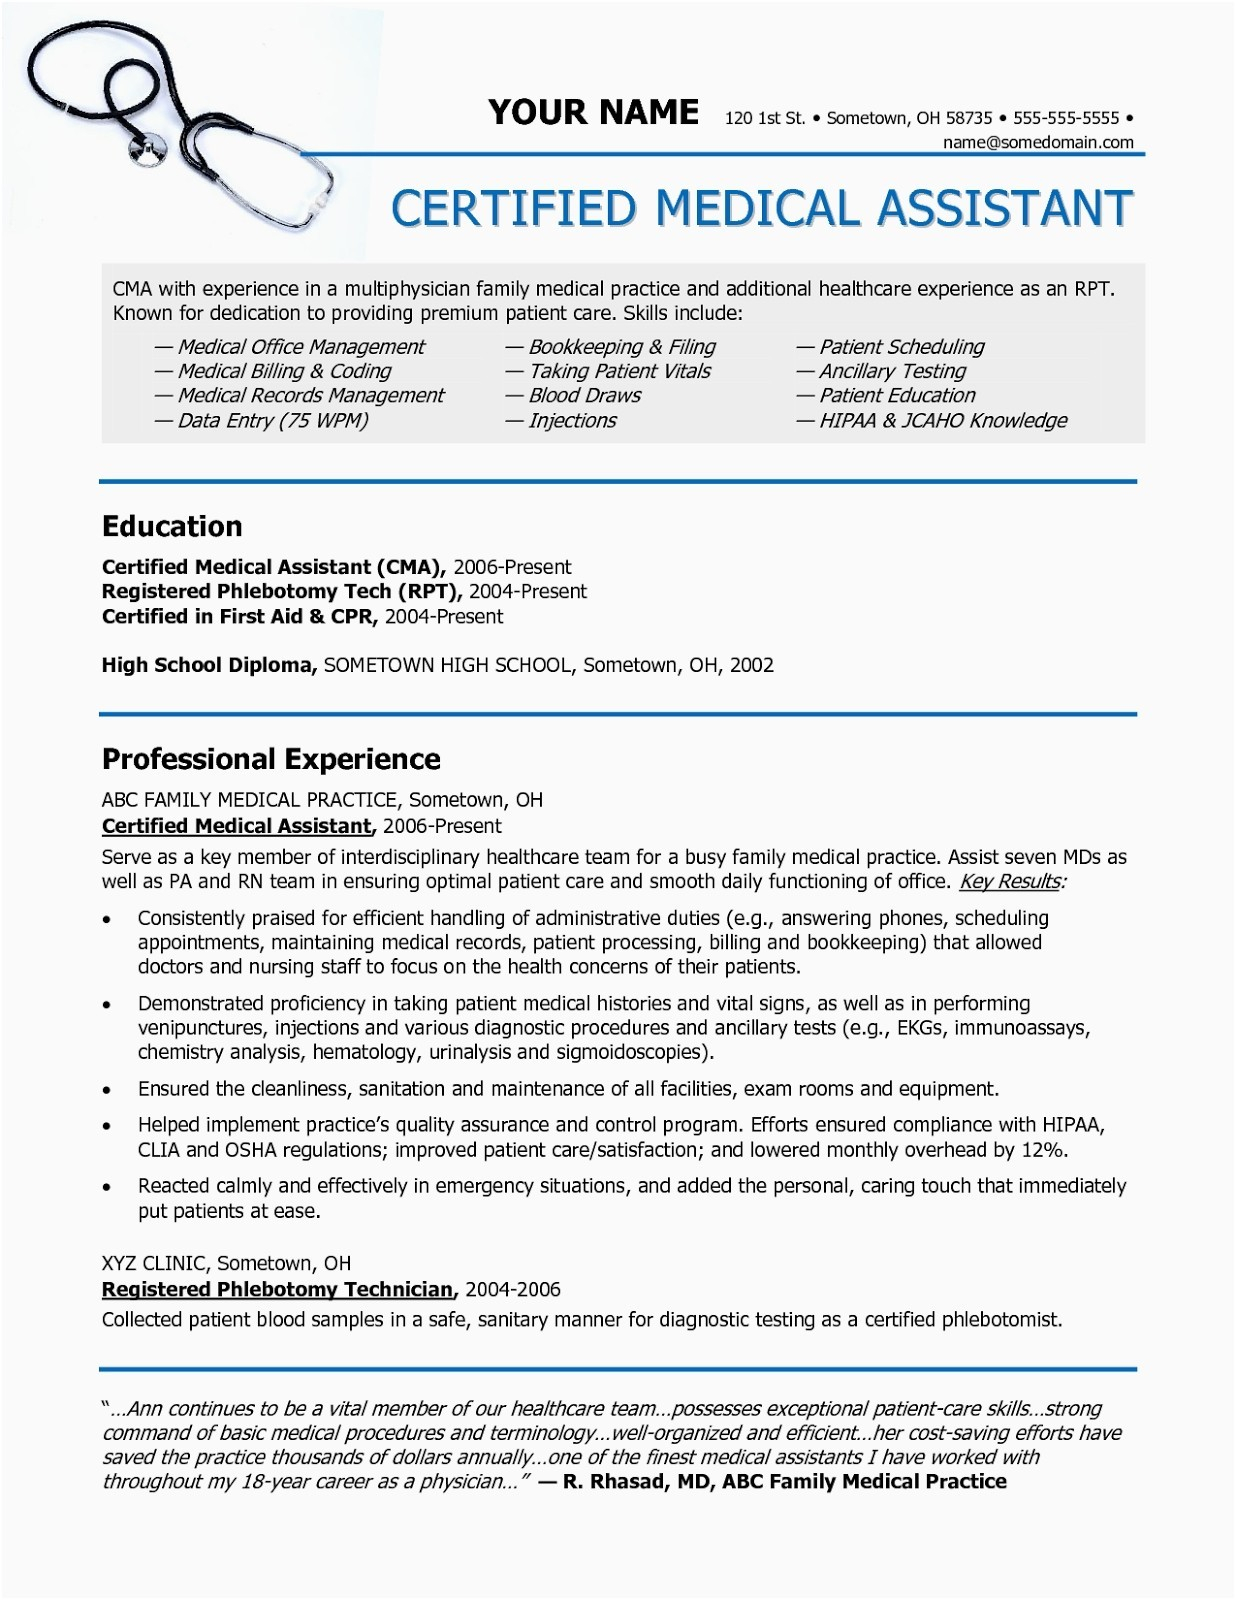 Medical assistant Resume Objective - Objective for Resume Healthcare Example Unique Good Resume Objective